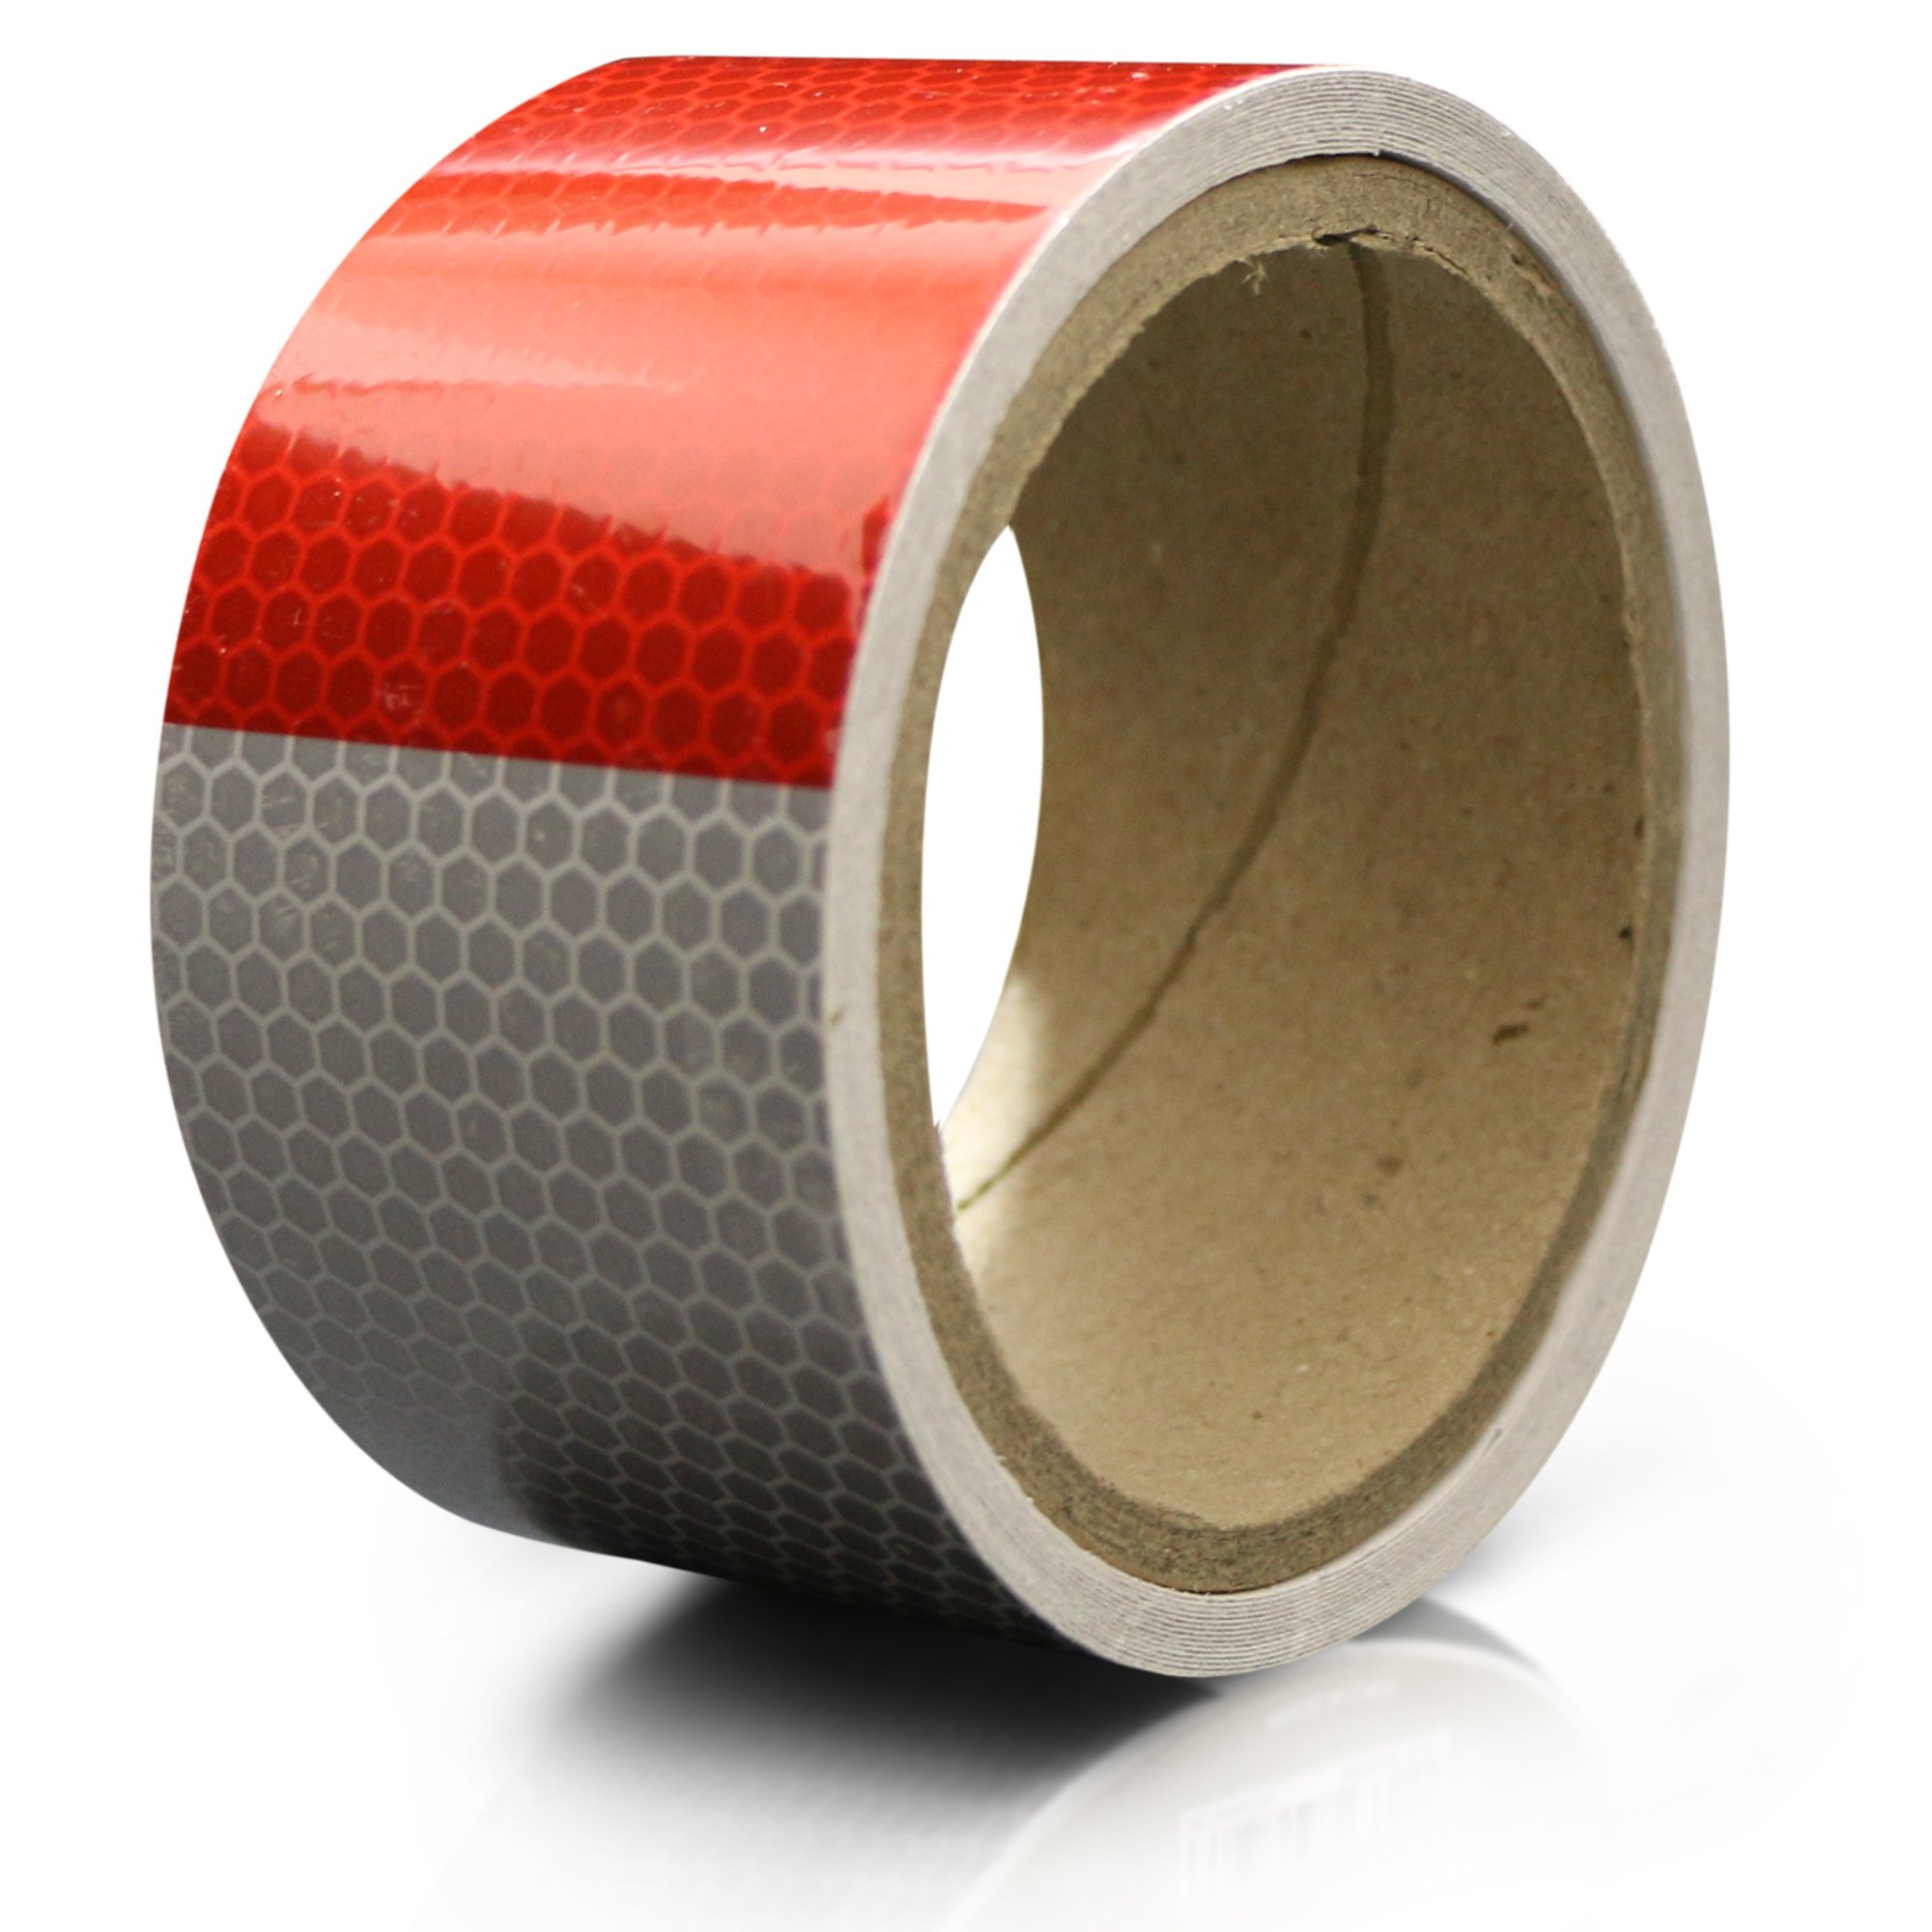 XFasten Reflective Tape, Red & White, 2 Inches by 5 Yards